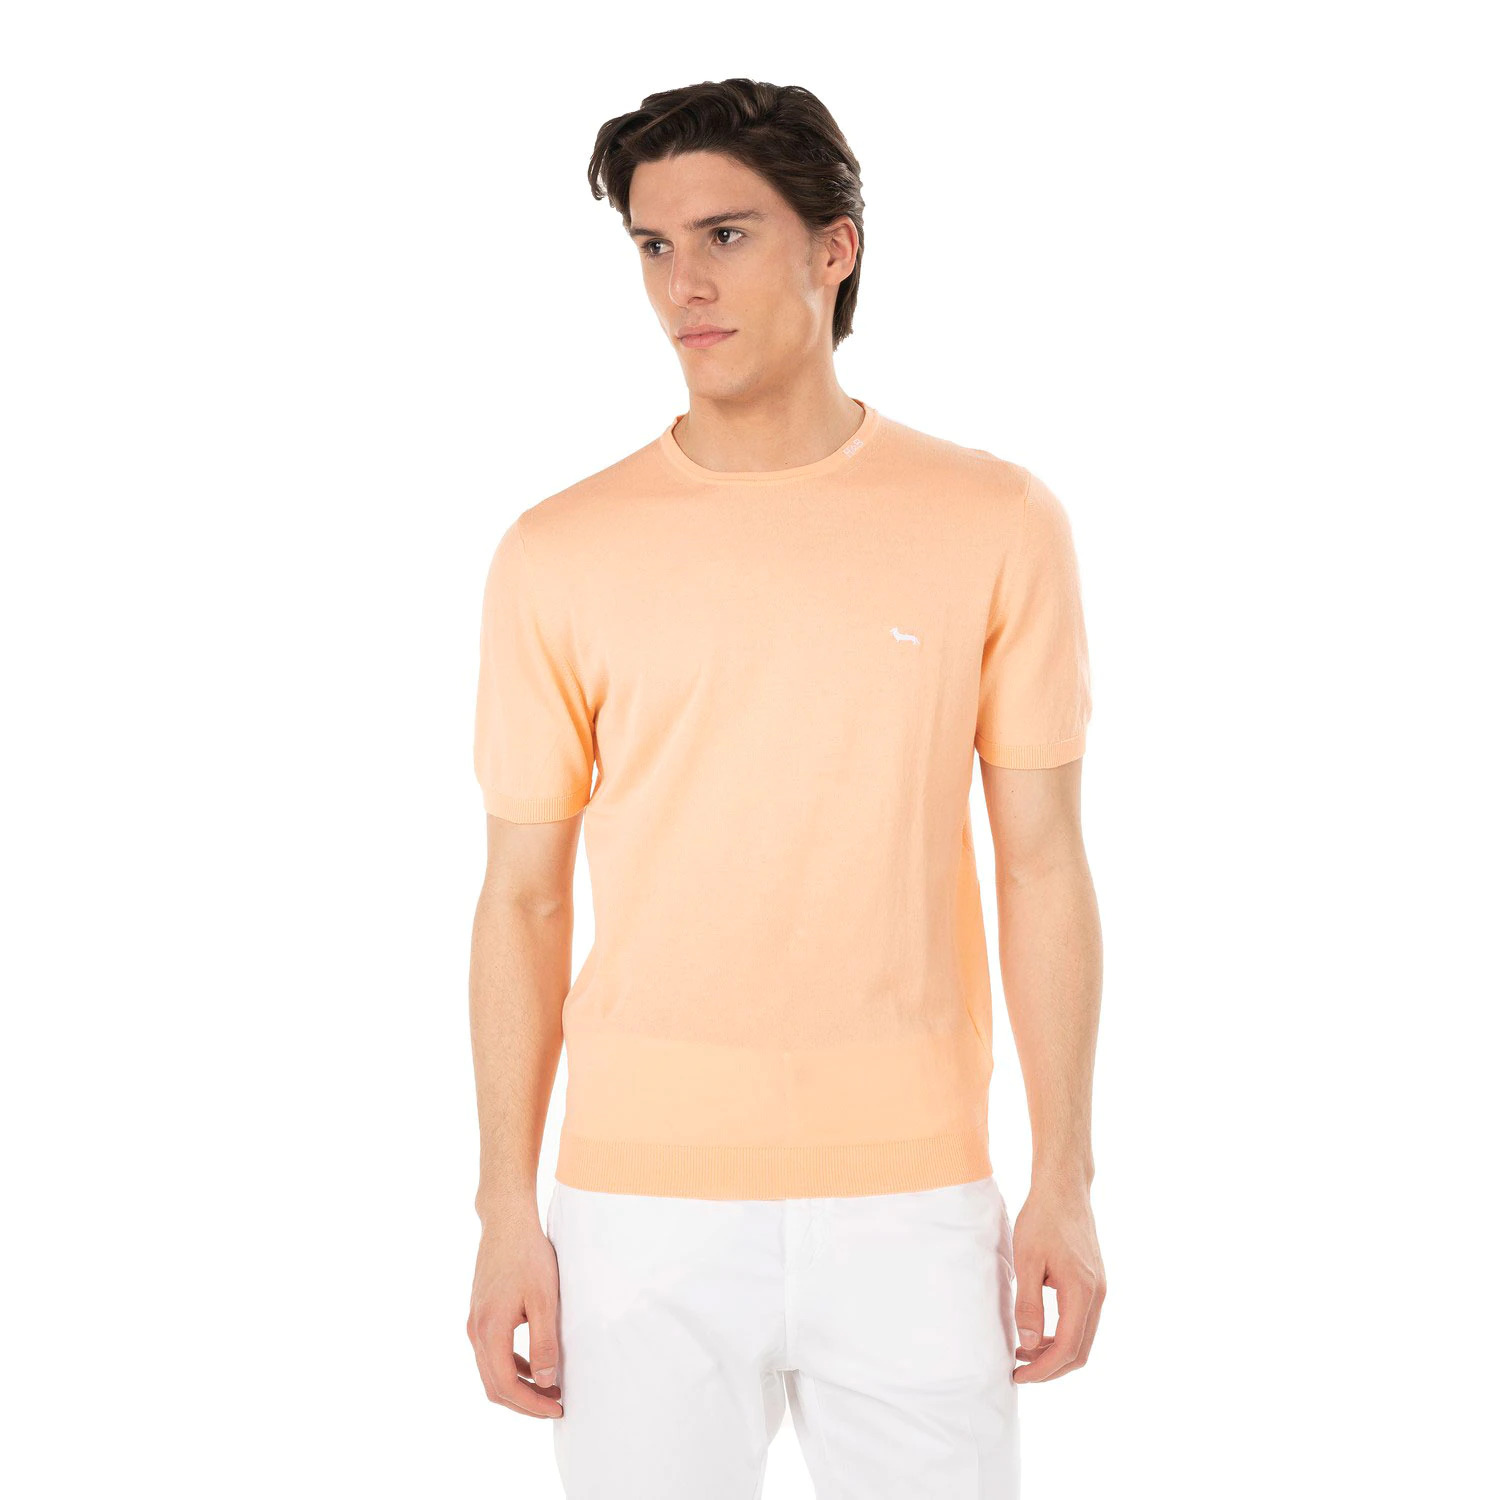 T-shirt in cotone Harmont and Blaine HARMONT & BLAINE   T-shirt   HRF239030728410